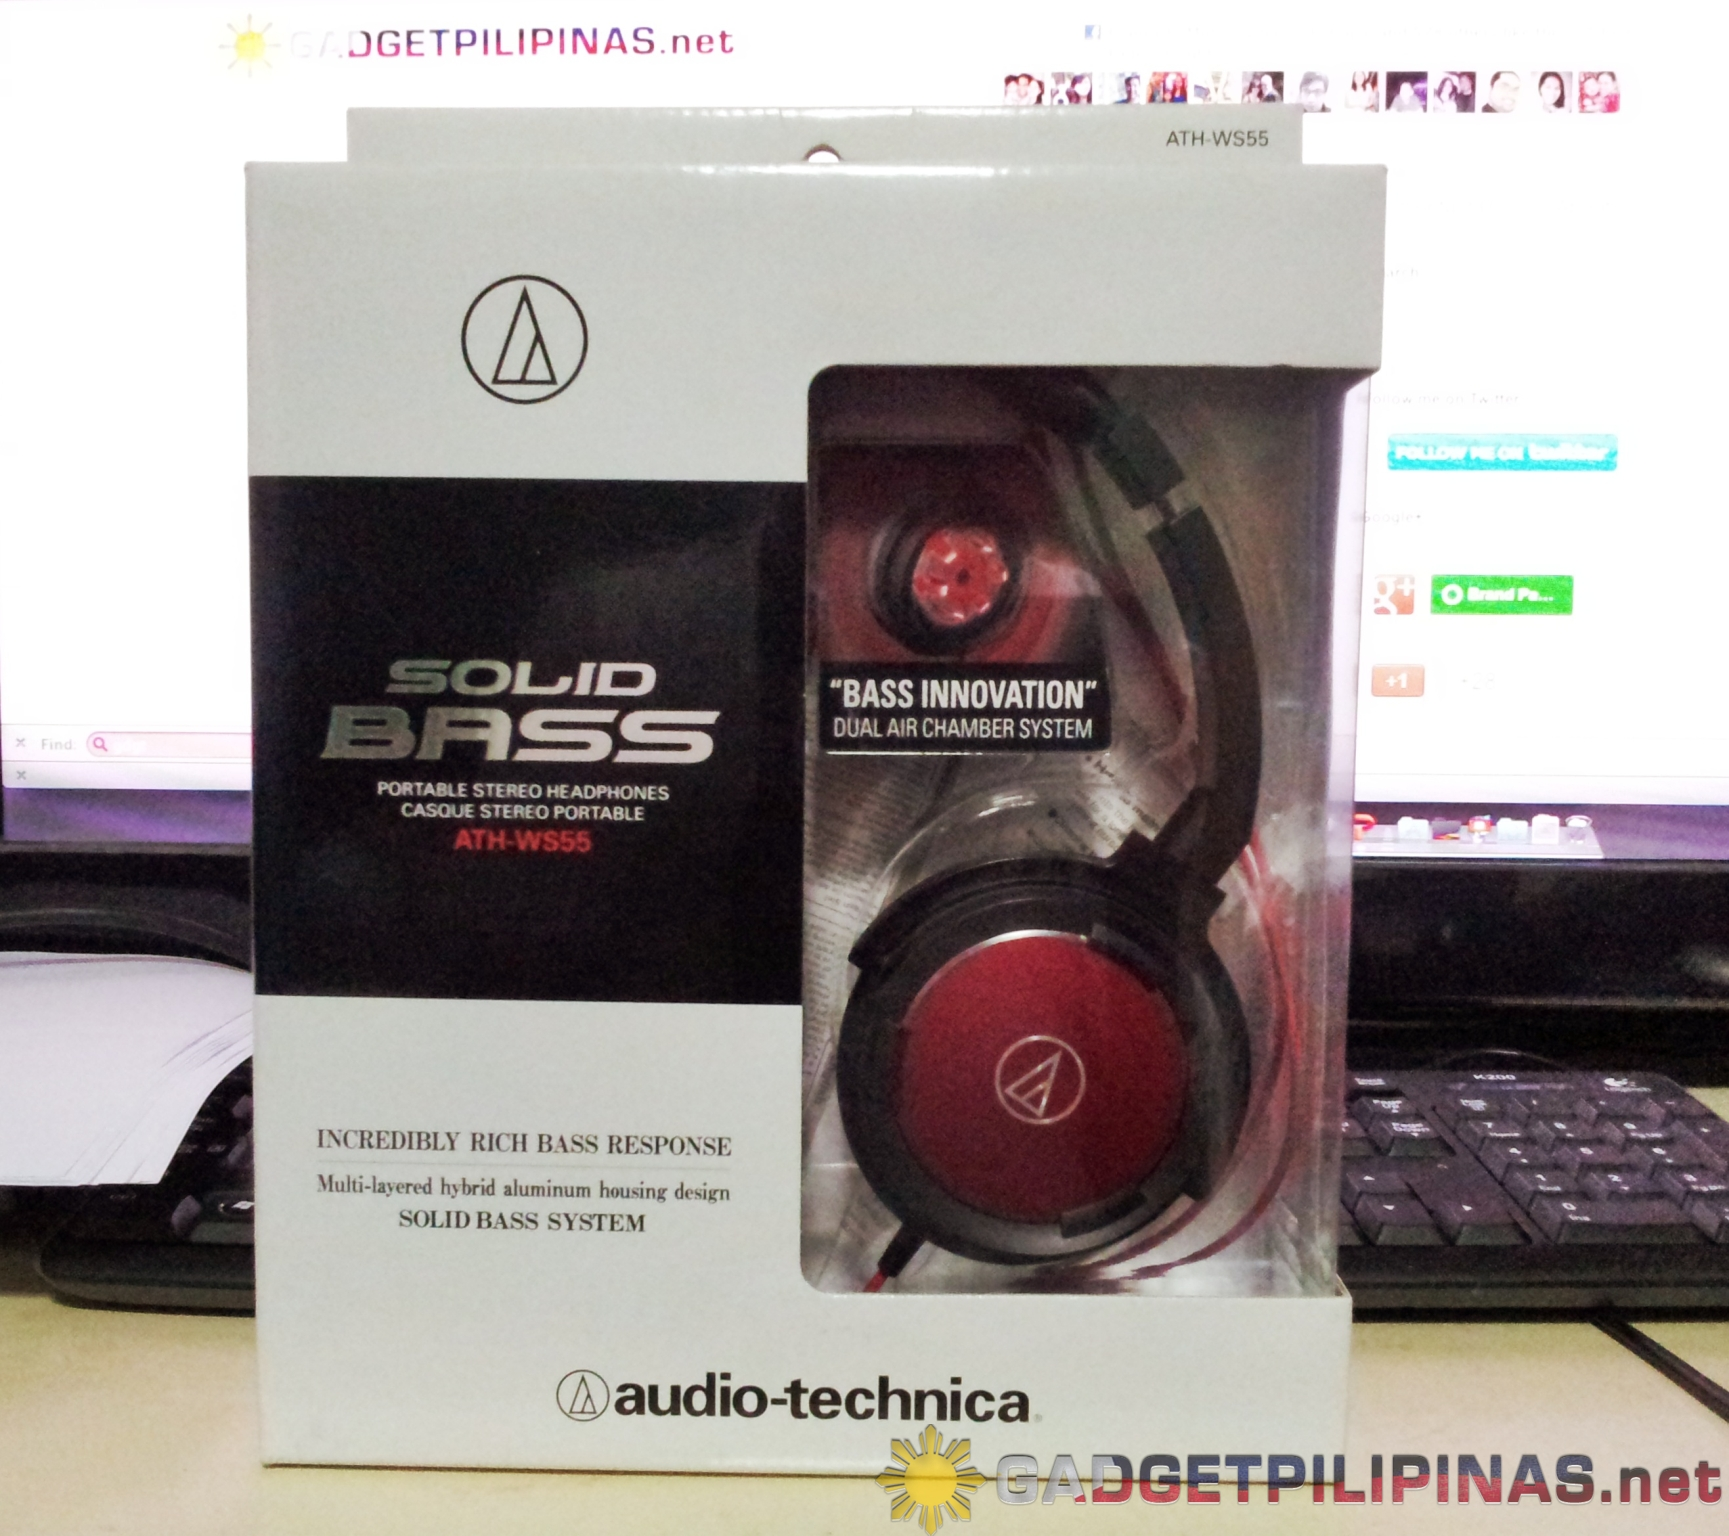 image0005 - Audio-Technica ATH-WS55 Solid Bass Headphone Review